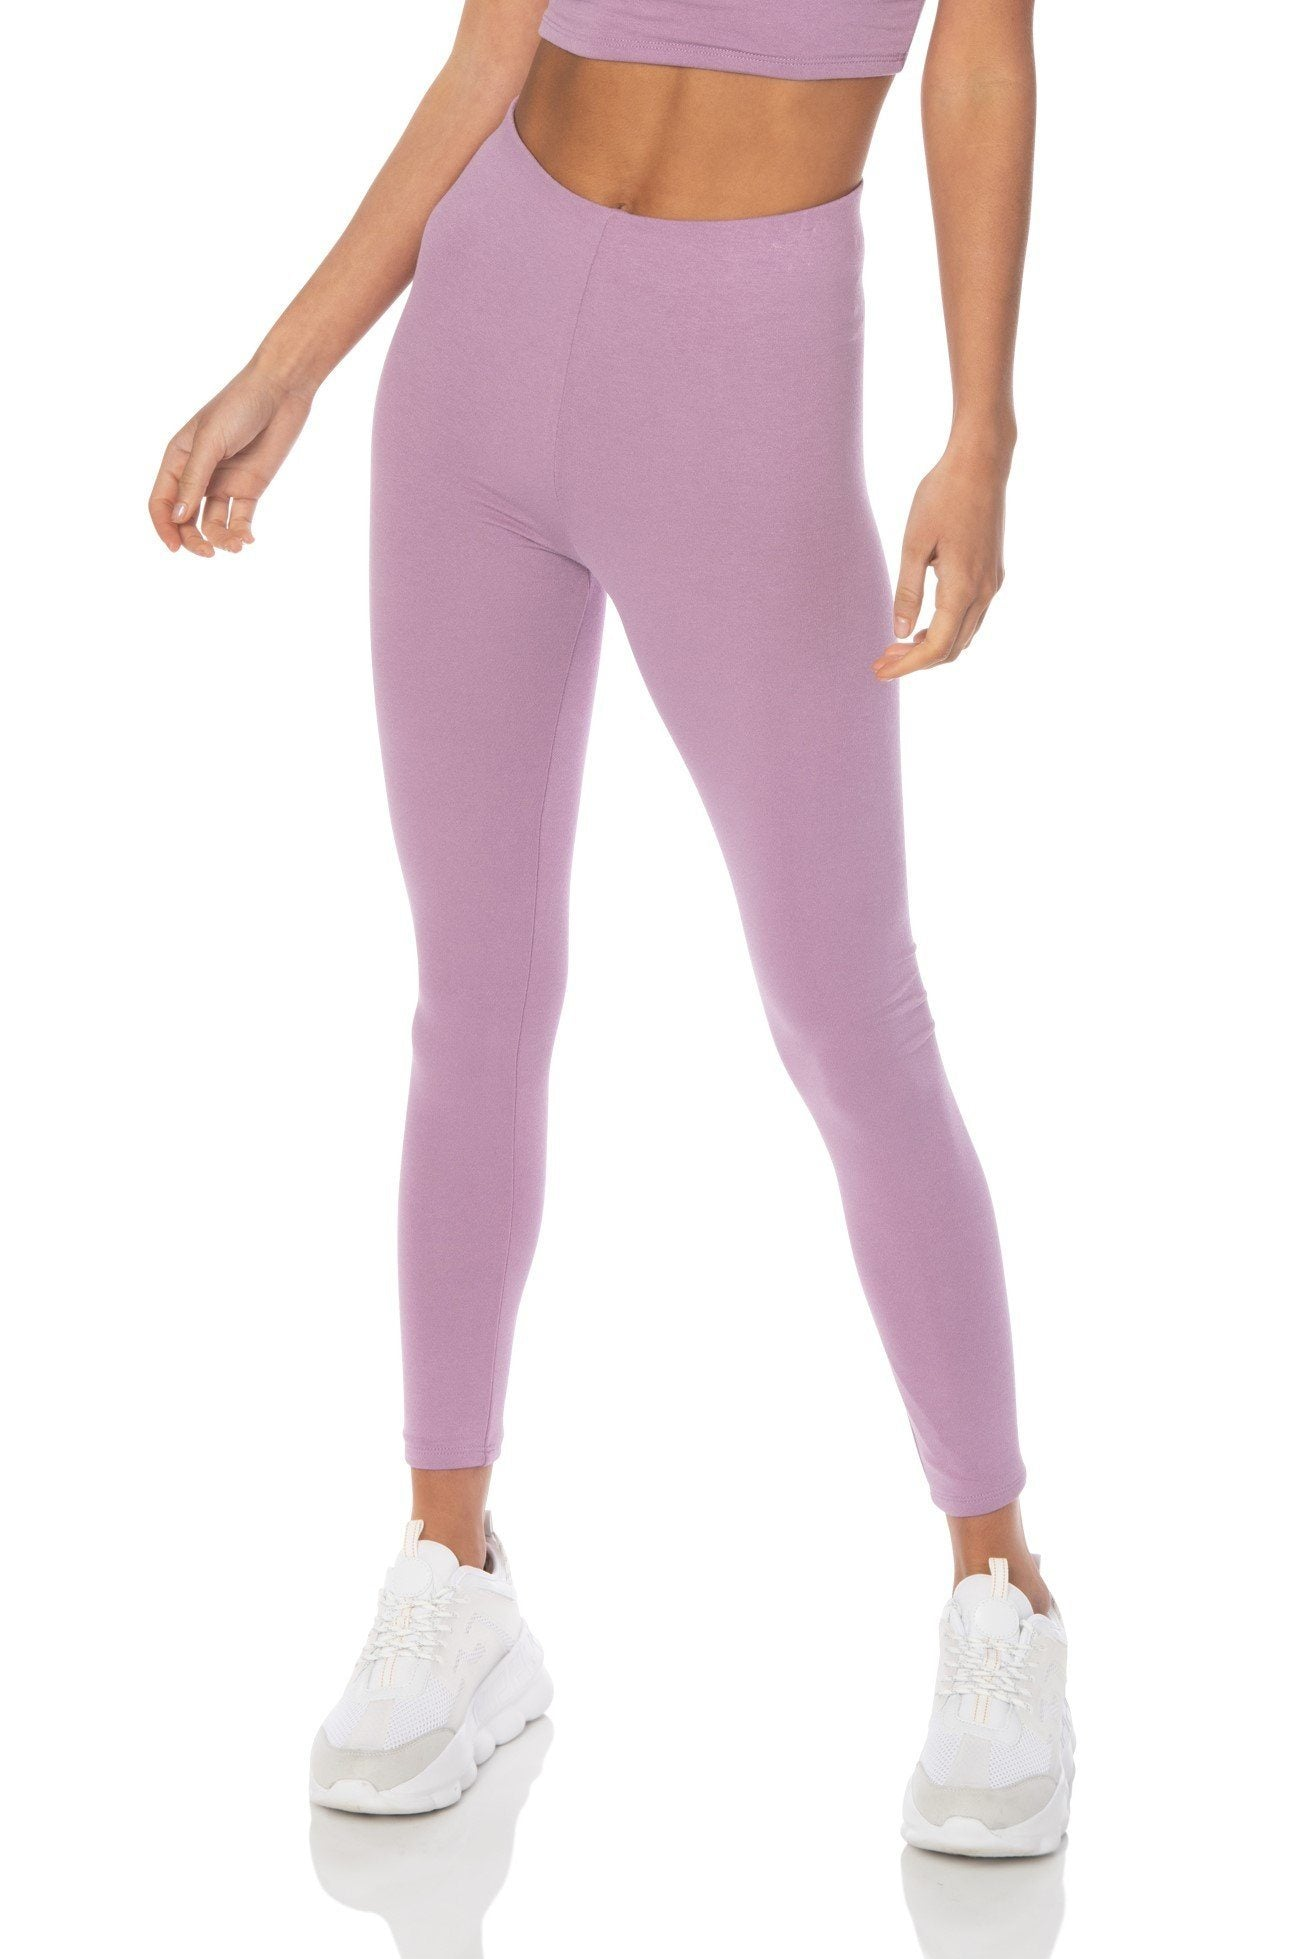 Dreamsicle Highwaist Leggings Lavender Bottoms HYPEACH